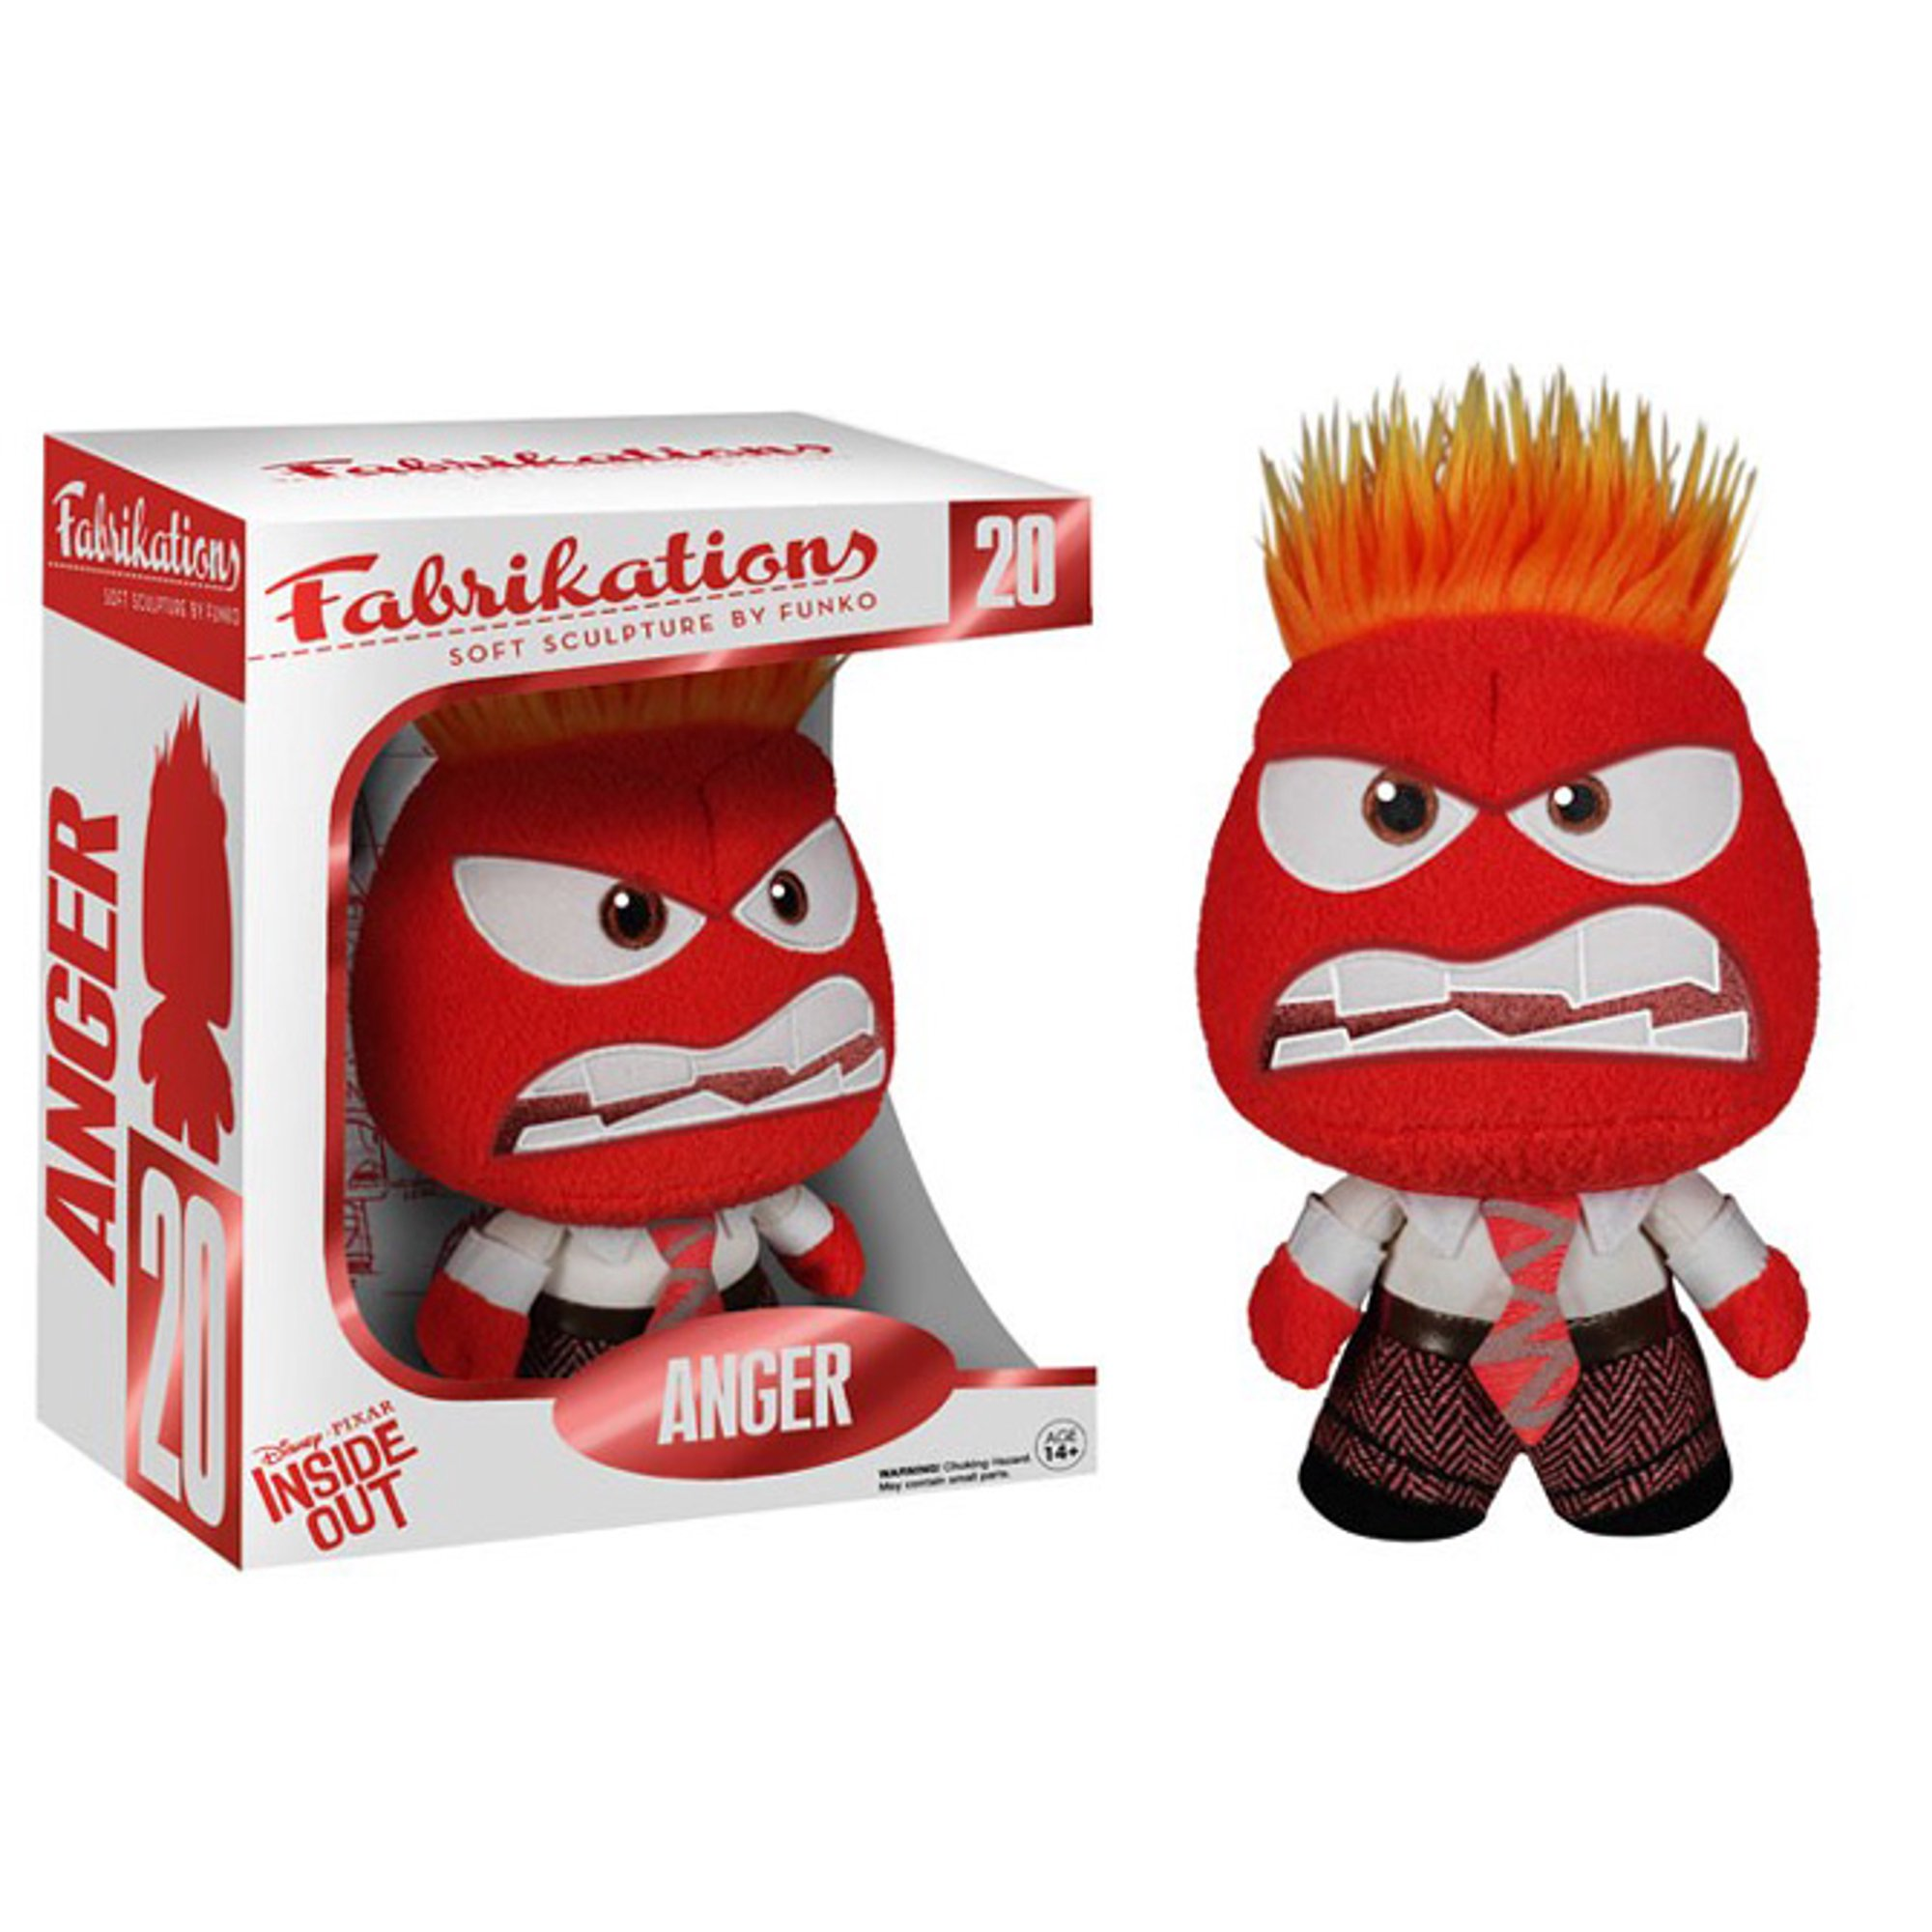 Fabrikations: Inside Out - Anger